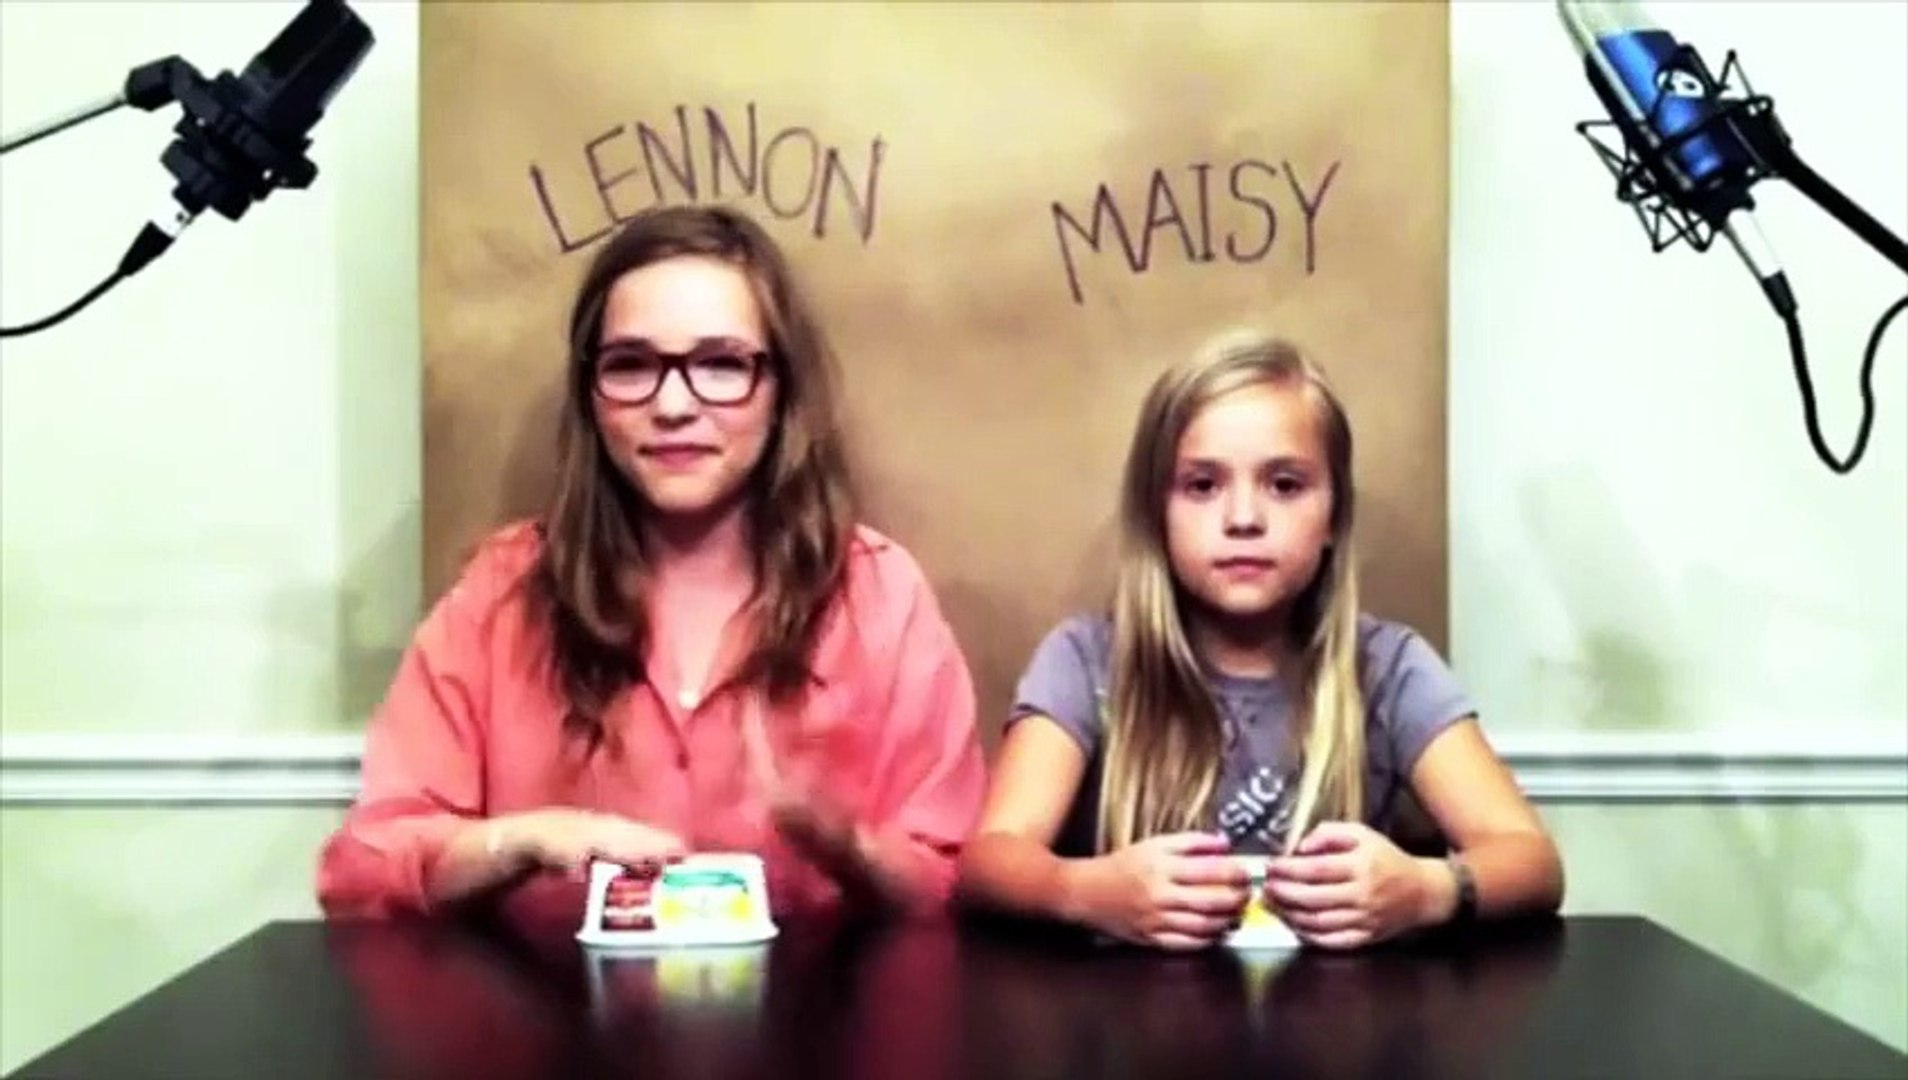 Spotlight Country - Lennon & Maisy's Covers Are Mind-Blowing (Spotlight Country)